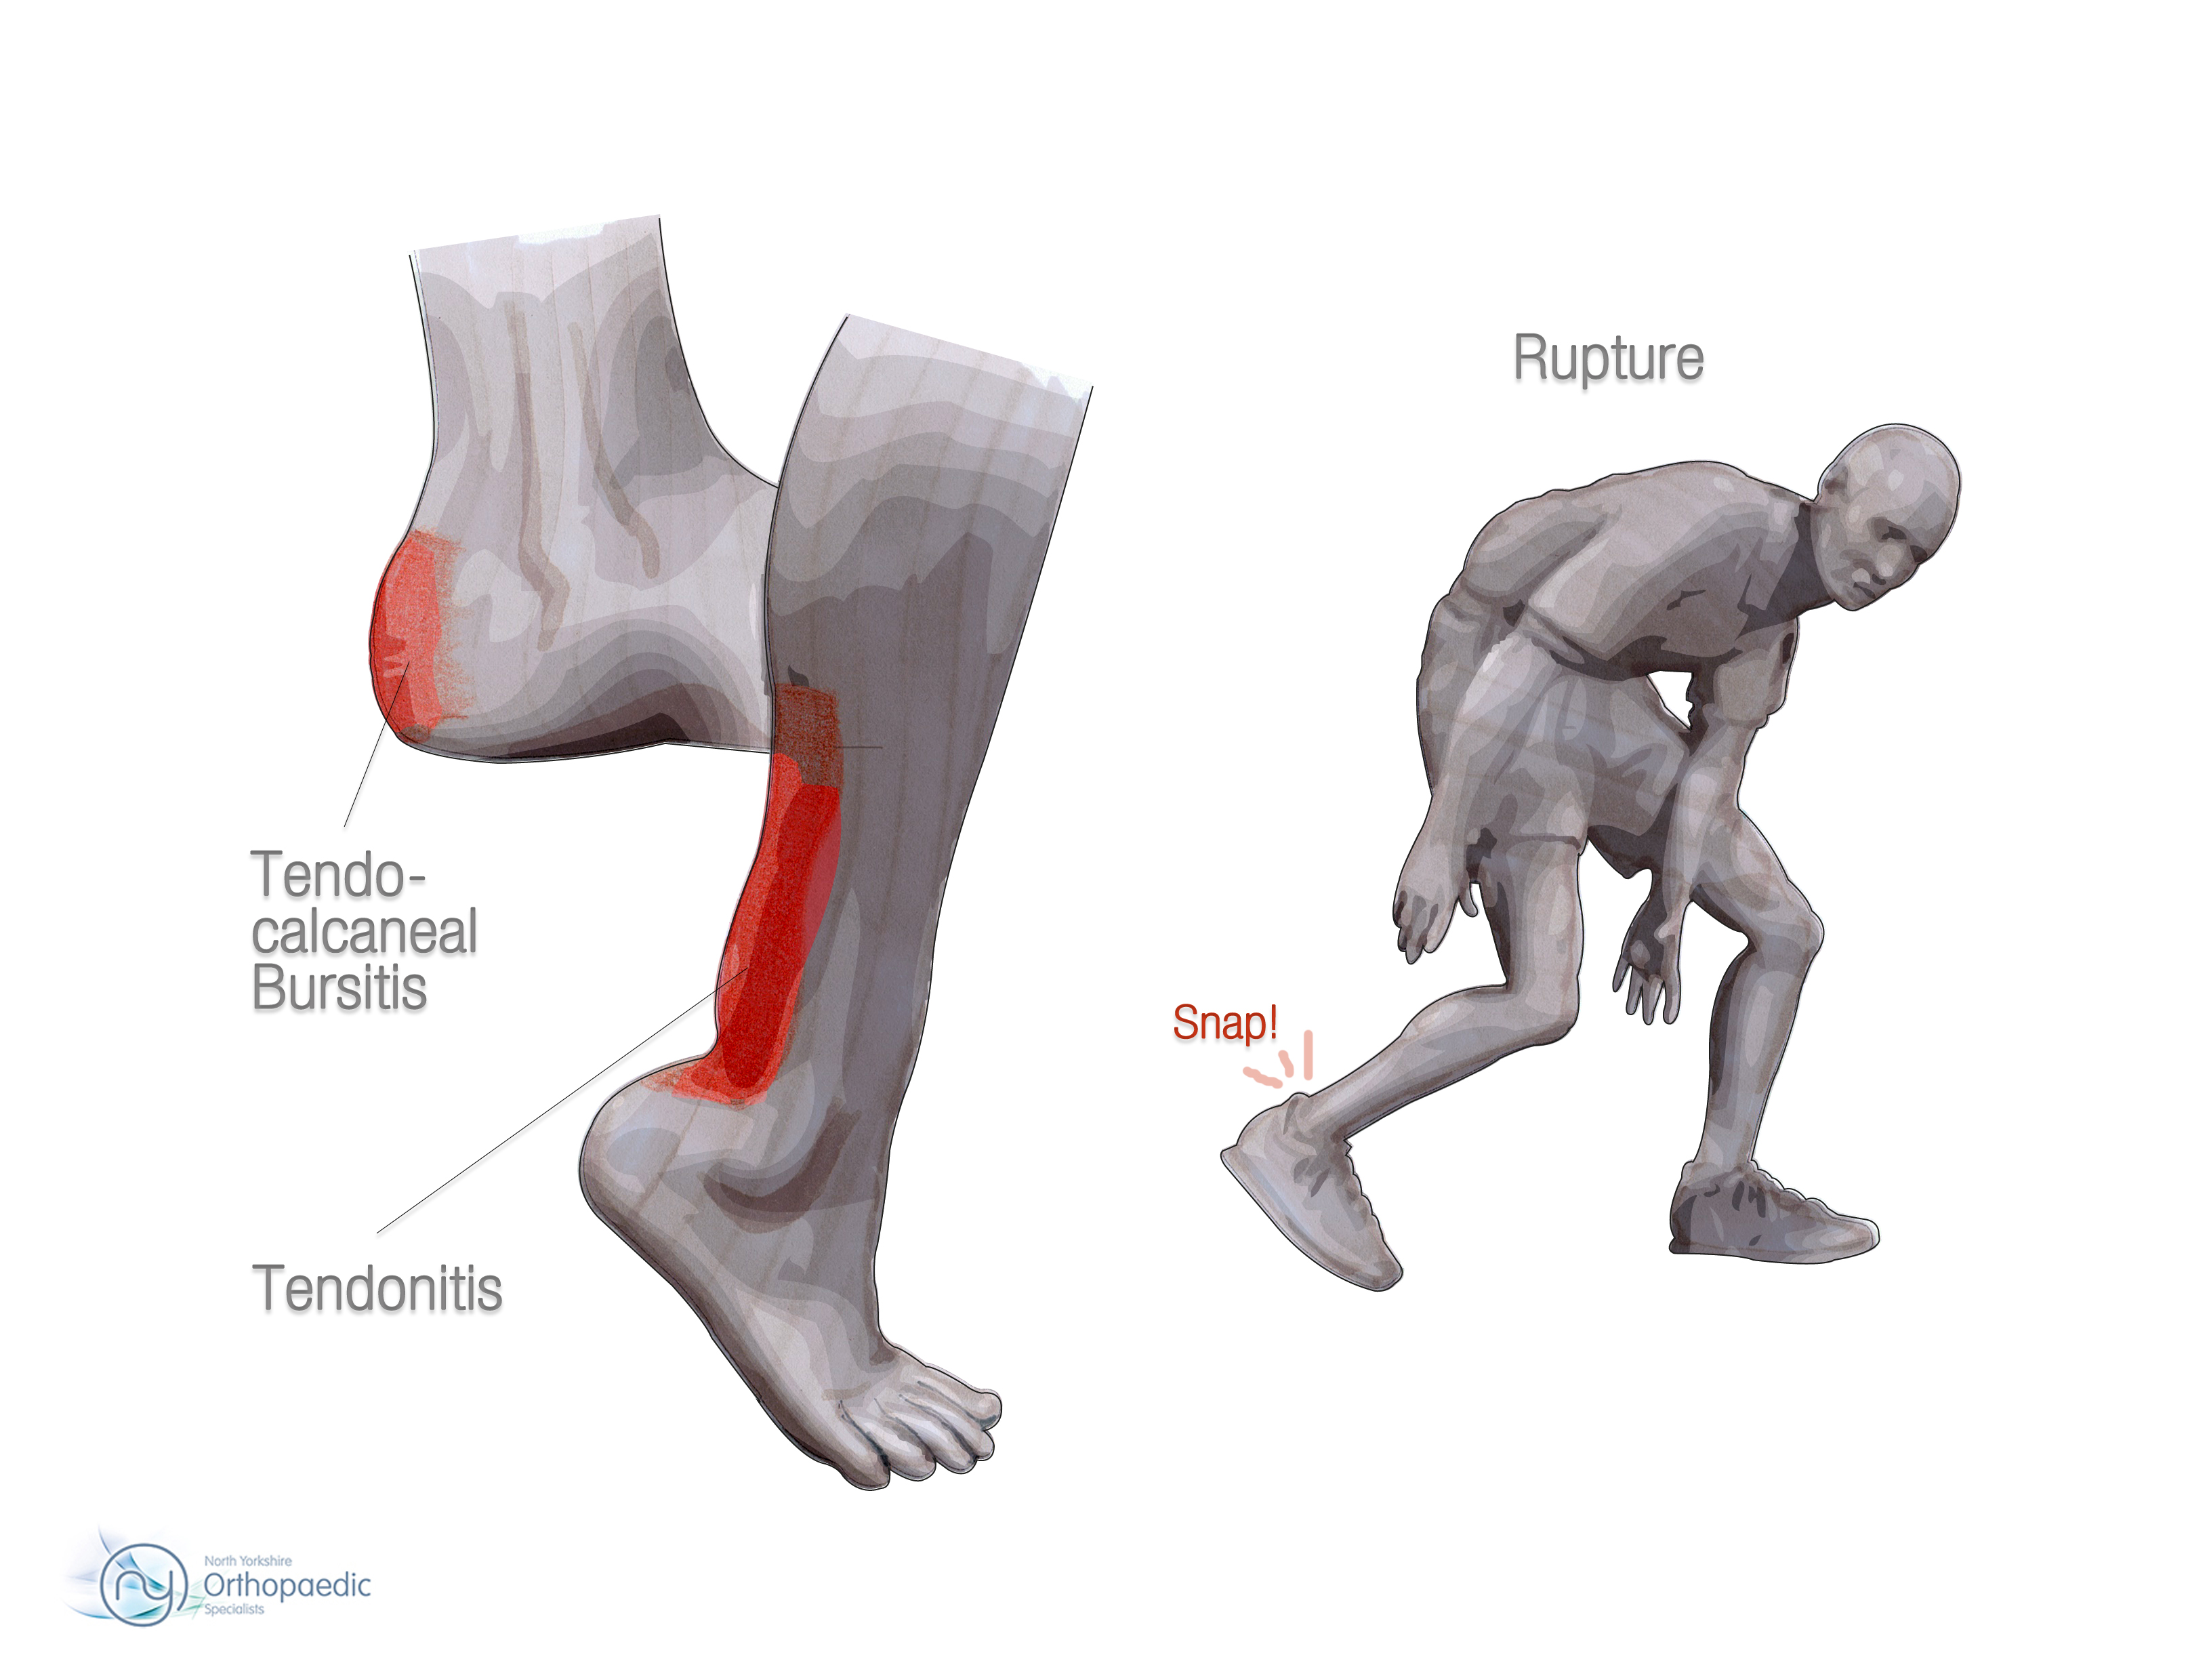 Achilles tendon rupture physical therapy - Why Does It Happen